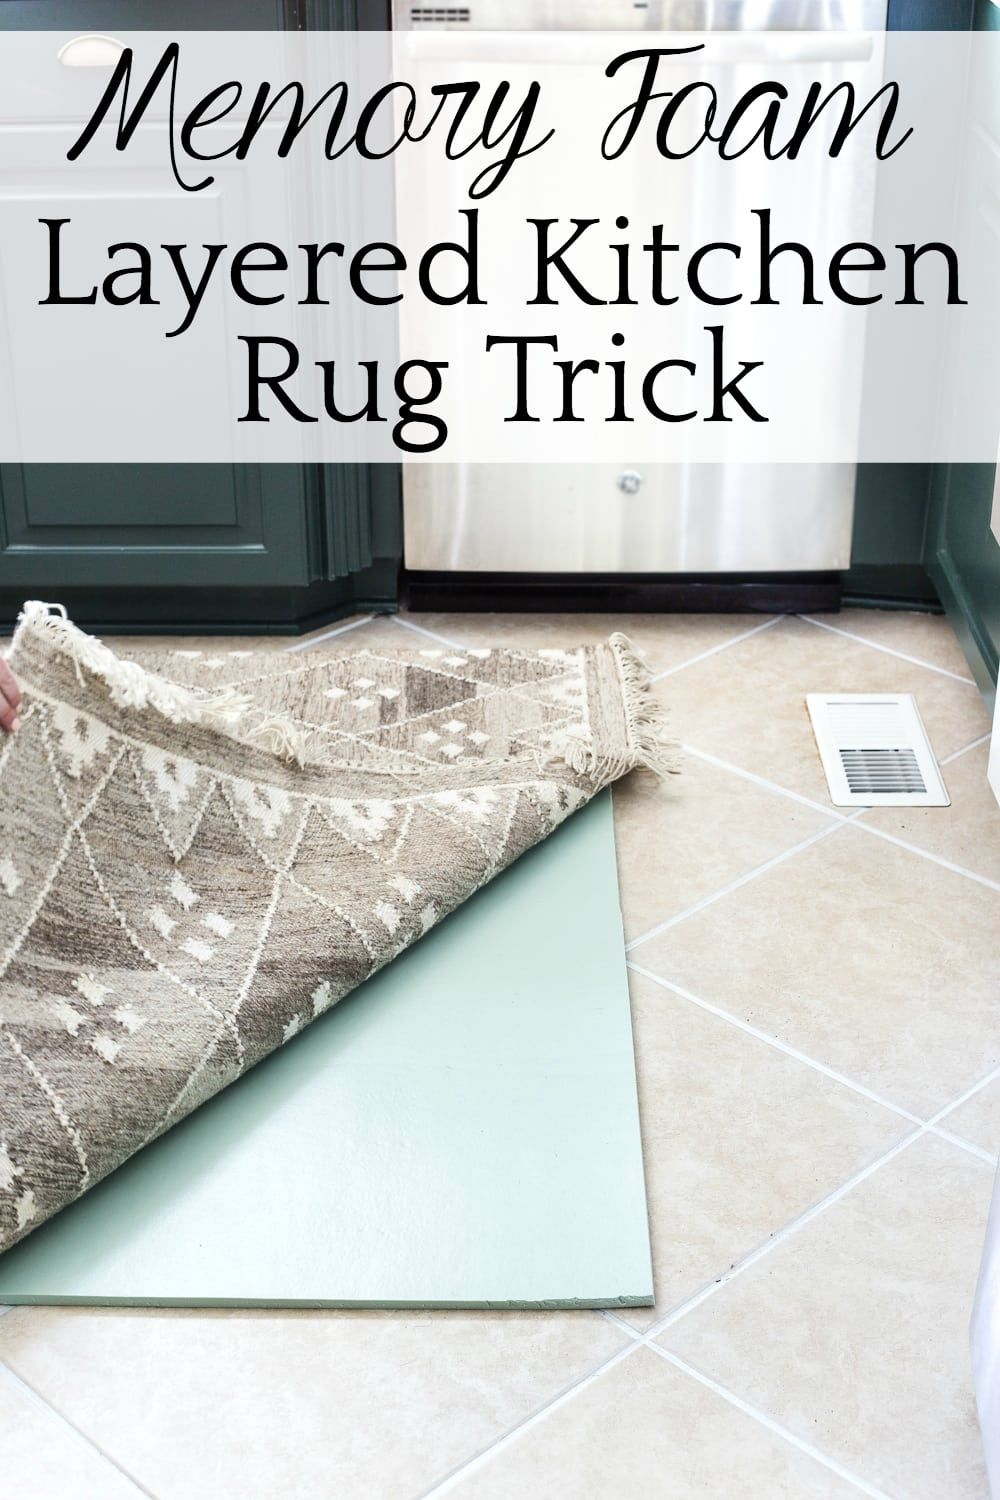 Memory Foam Layered Kitchen Rug And Tile Grout Refresh Tips